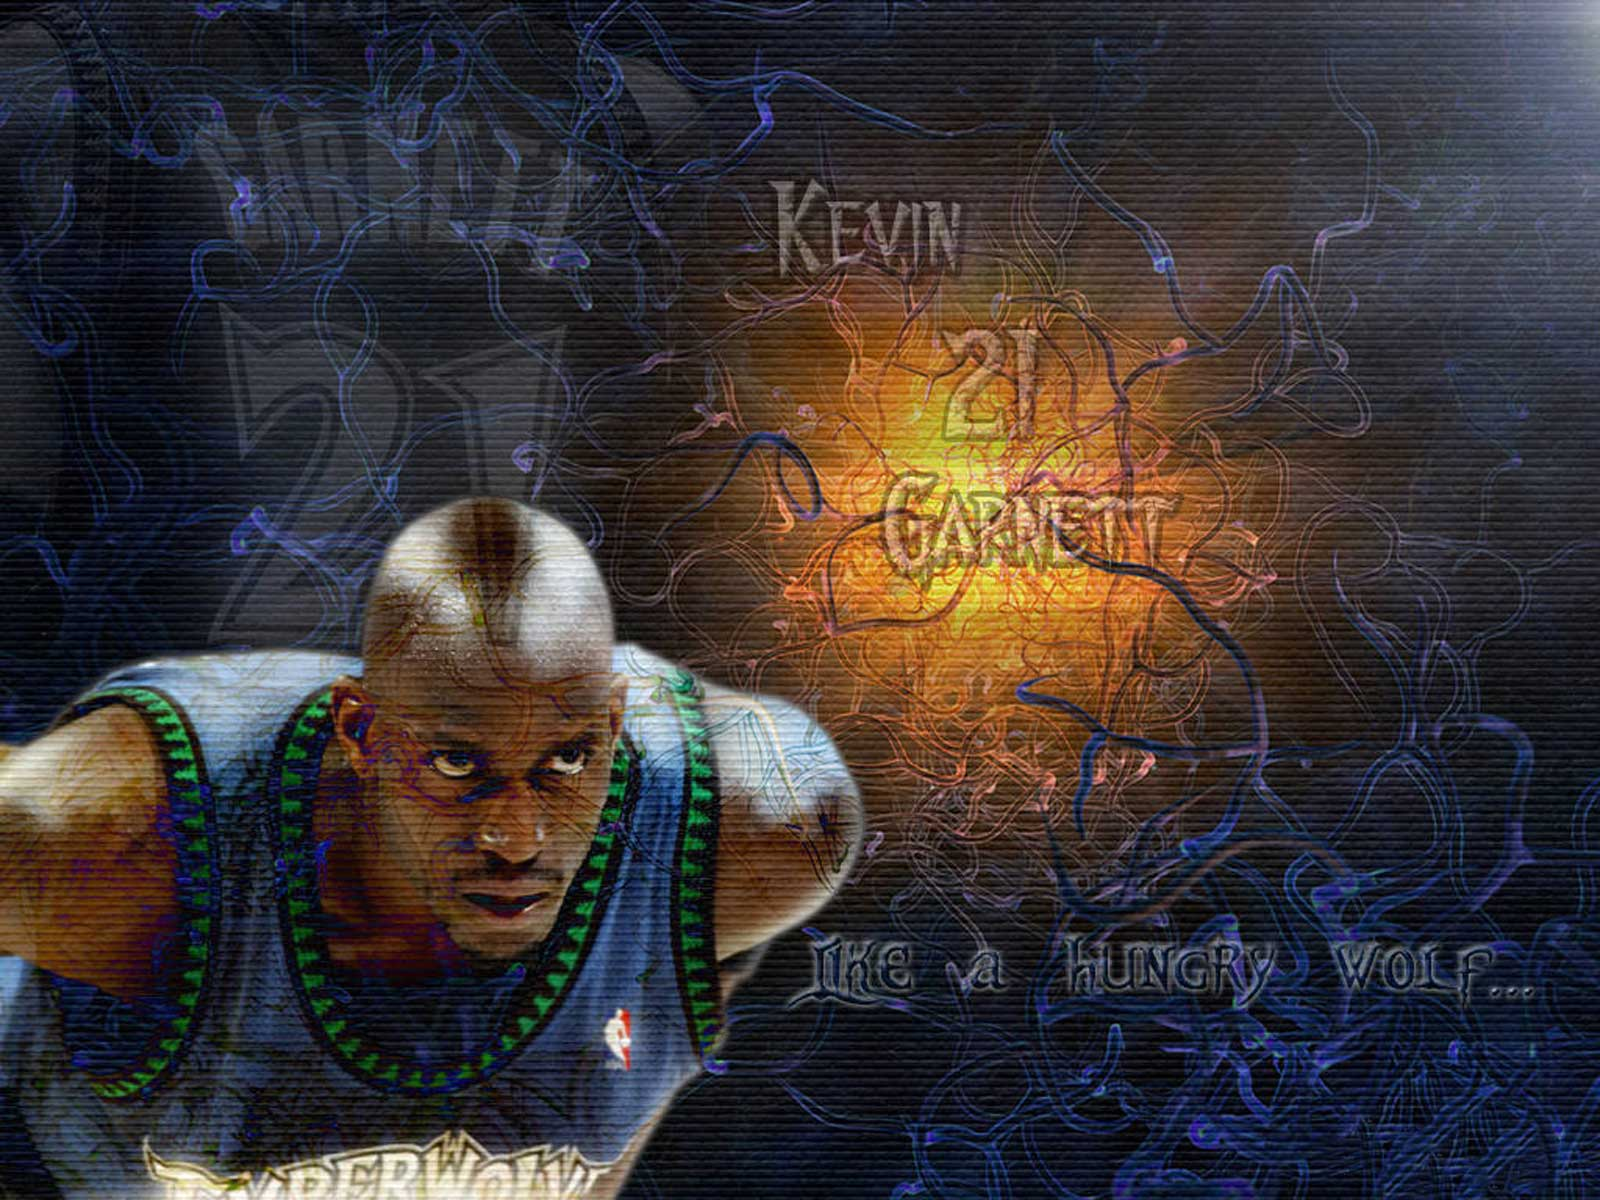 Index of varalbumsNBA PlayersKevin Garnett Pictures 1600x1200